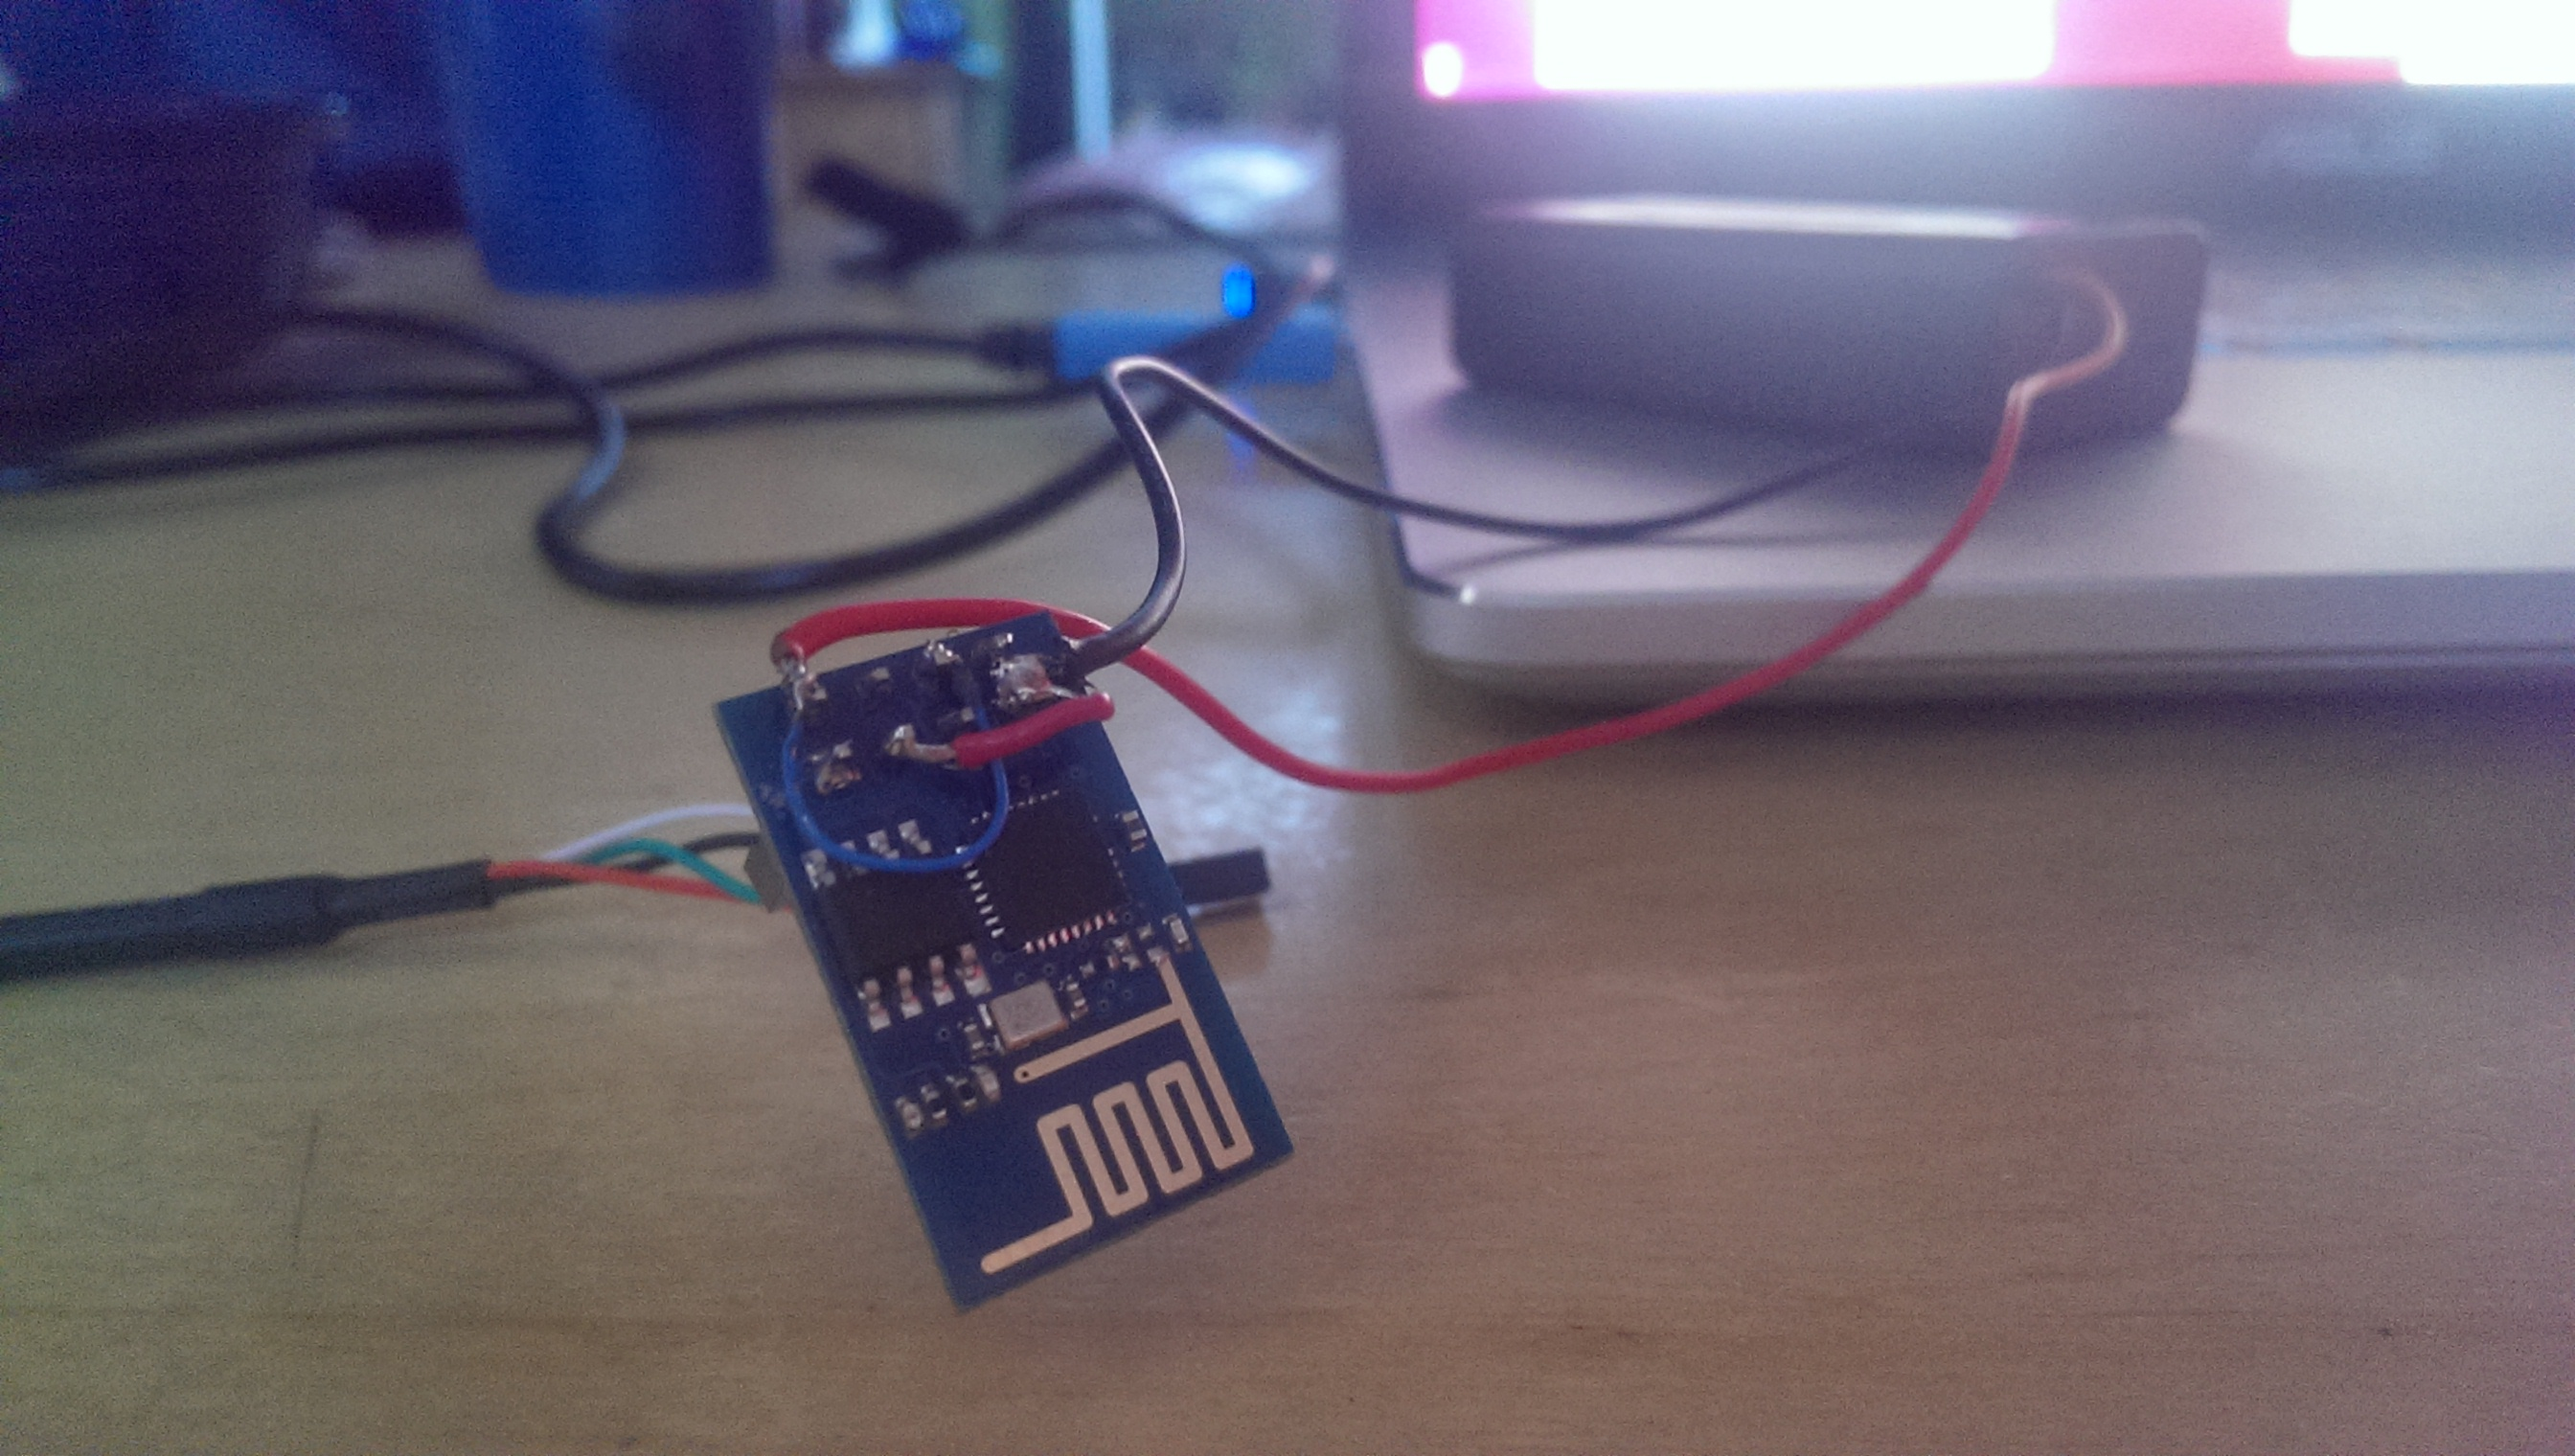 memcpy io | Building NodeMCU for the ESP8266